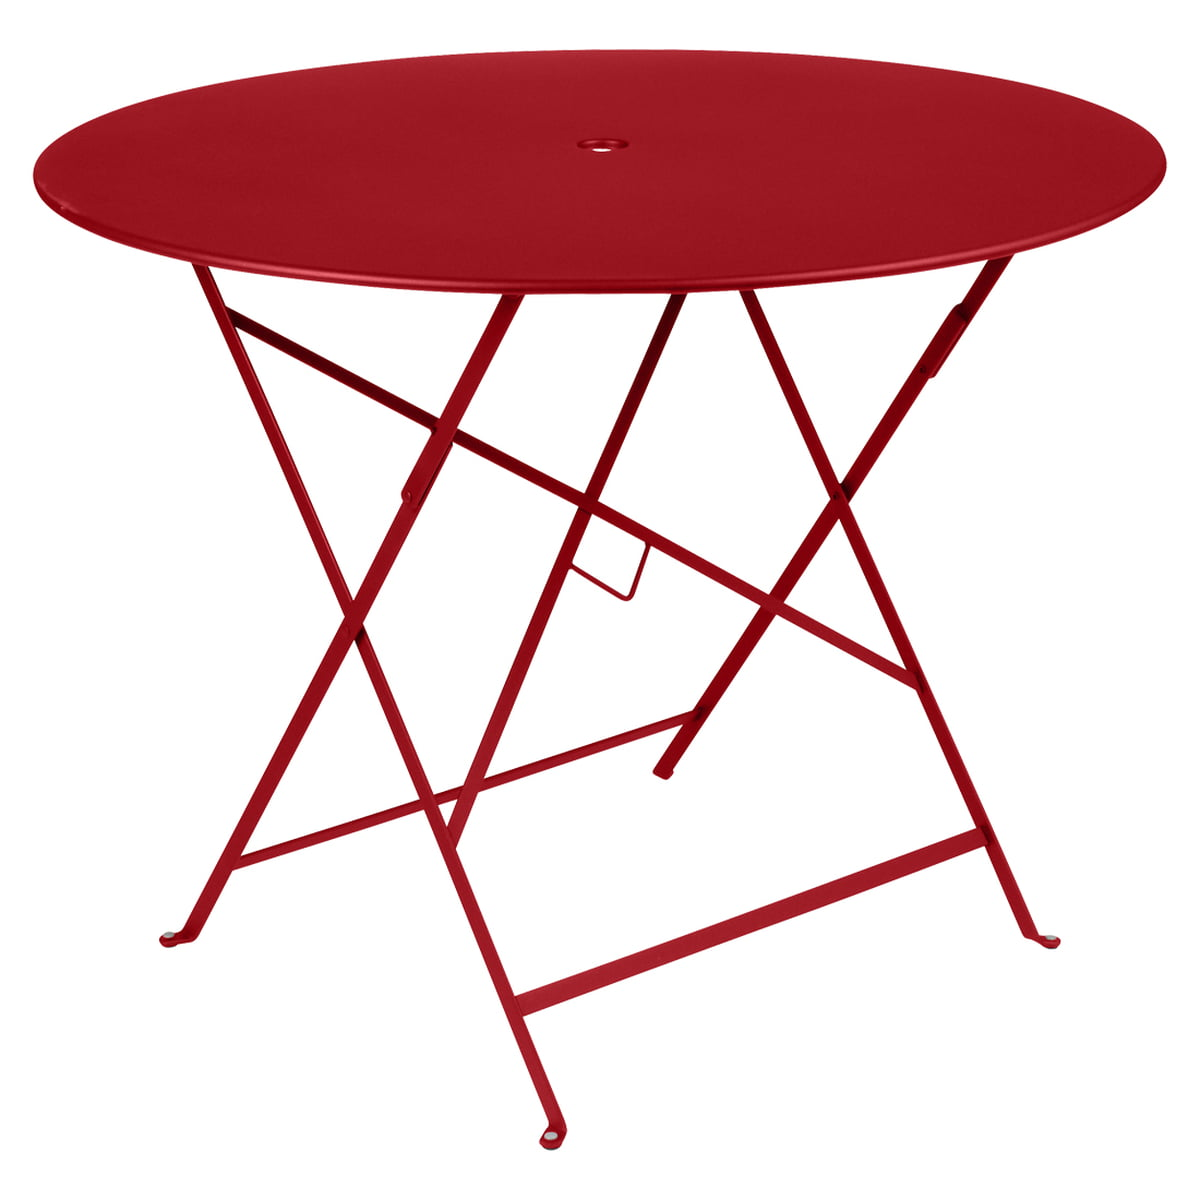 The Round Bistro Table By Fermob In The Shop # Table Pliante Style Brasserie